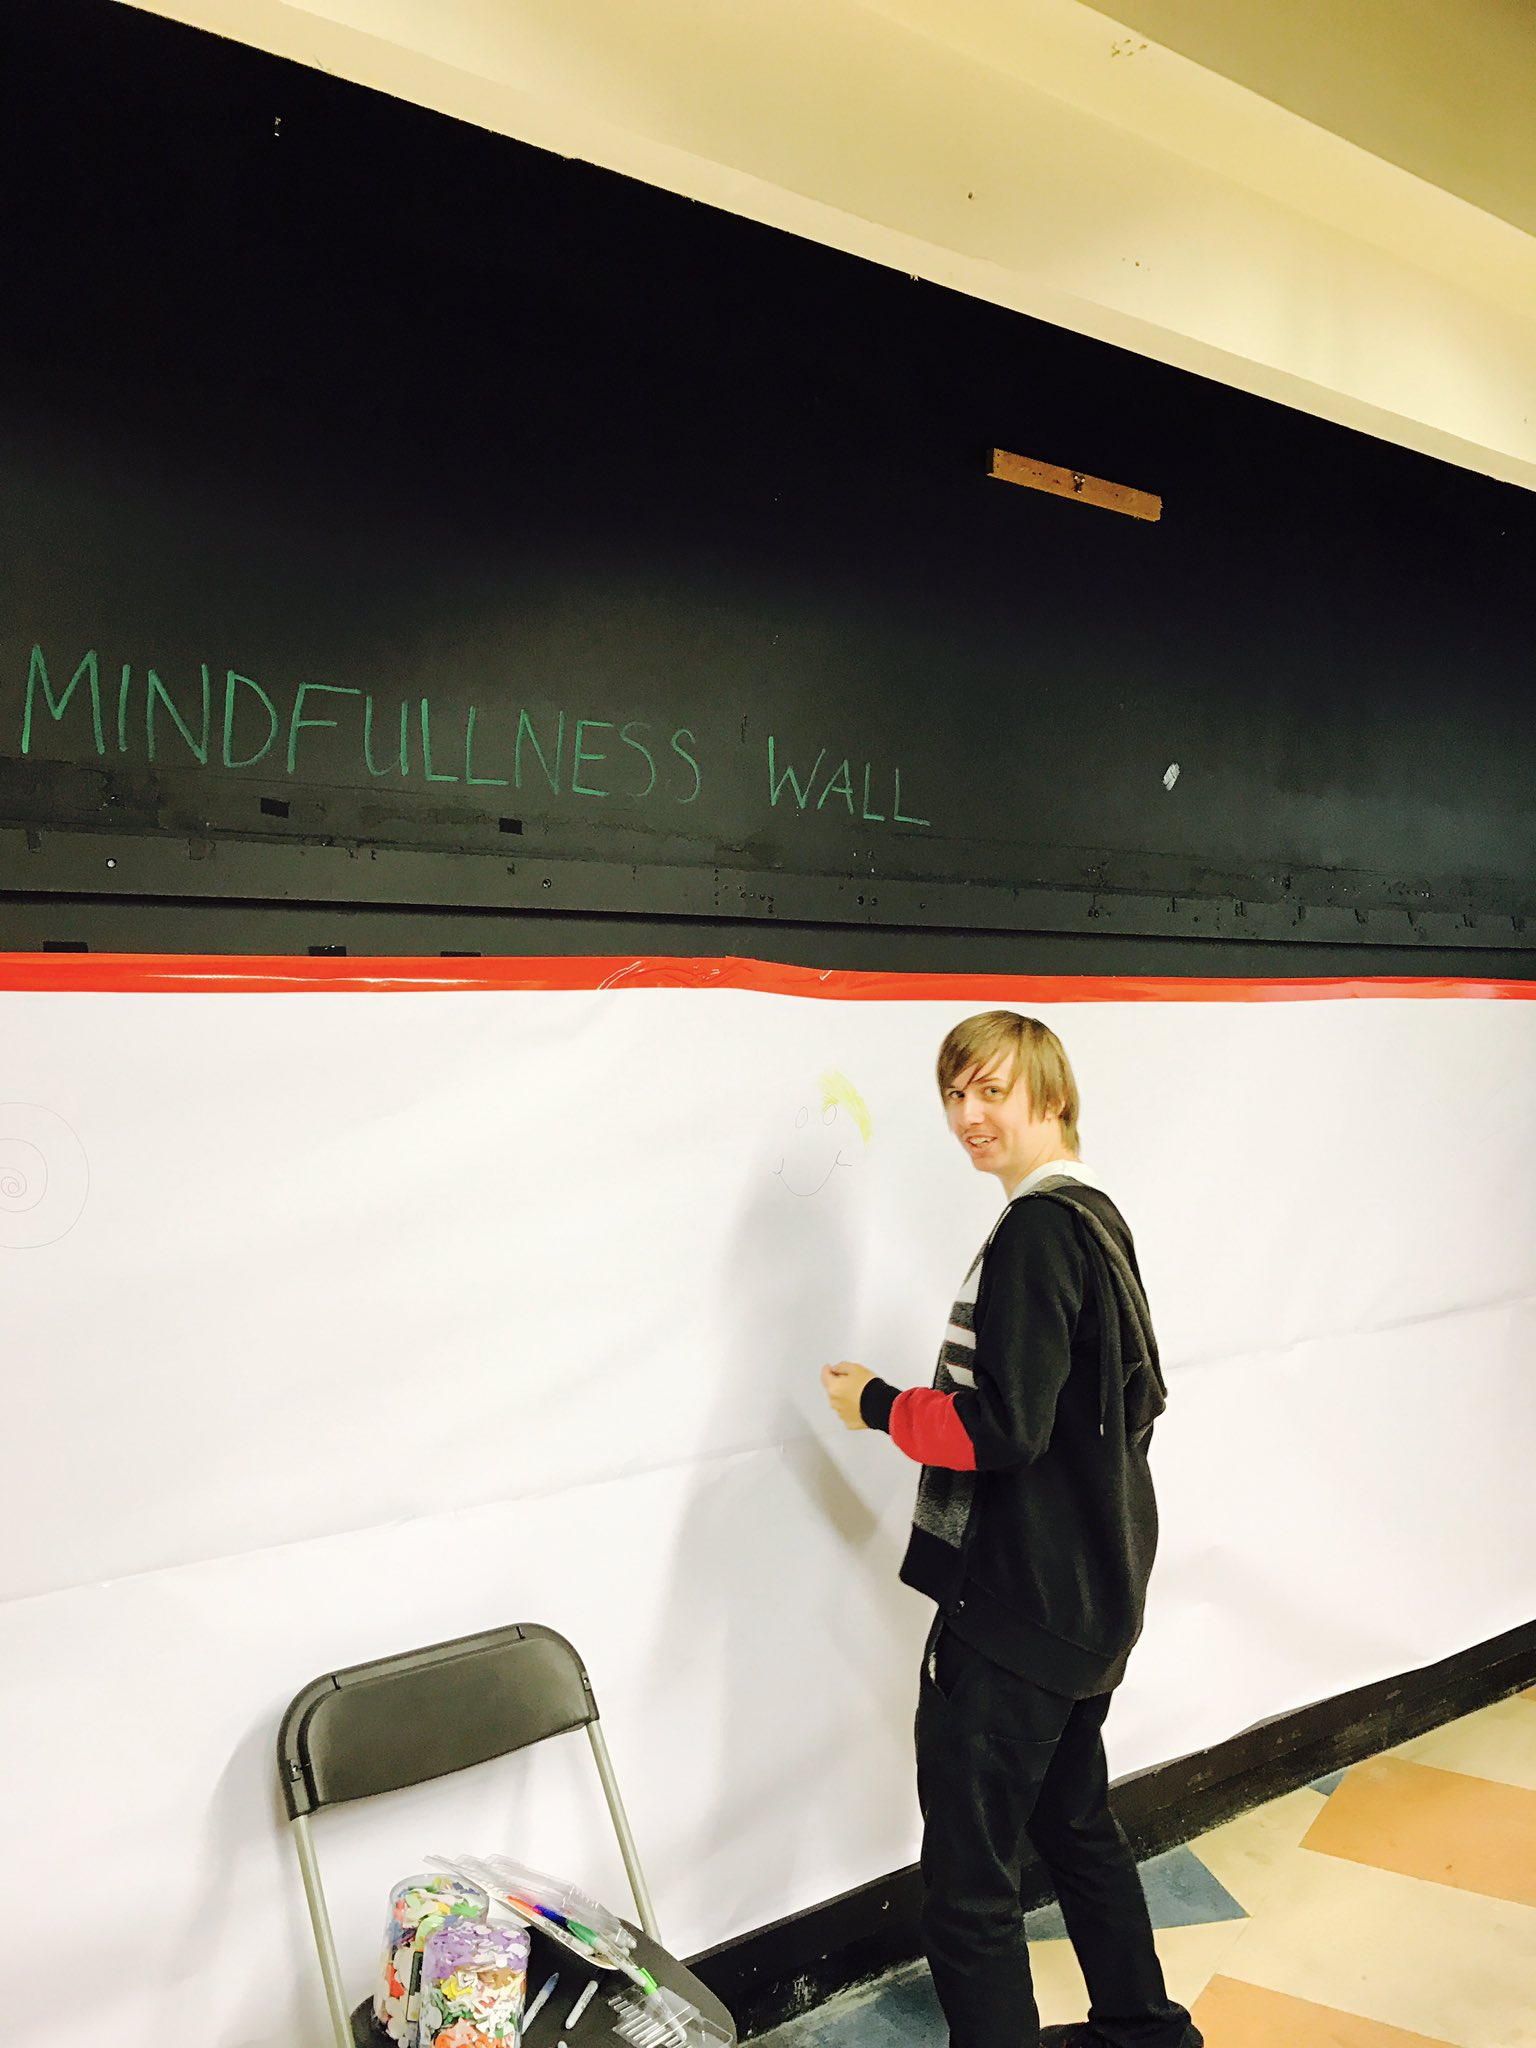 James is making a start to the mindfulness wall #WMHDLeicester @LAMPadvocacy https://t.co/uZQhpCRAk9